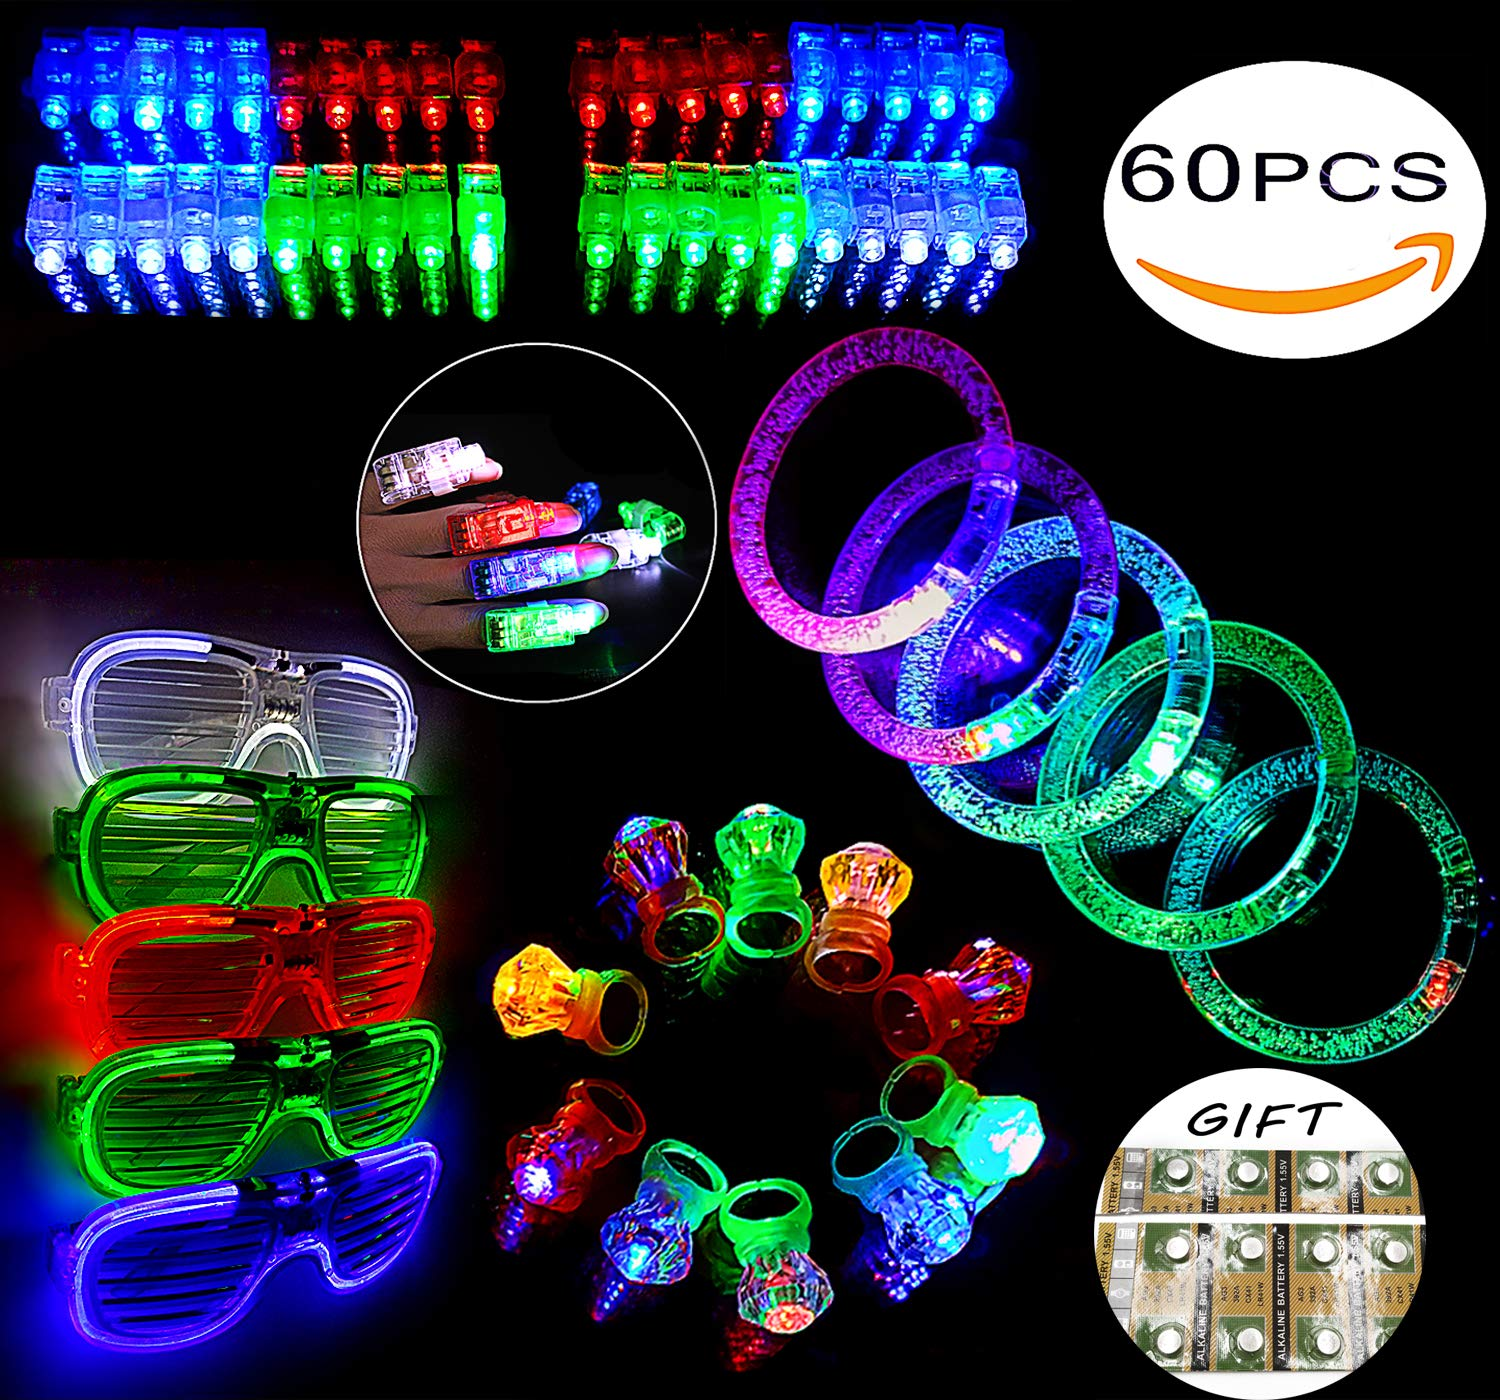 FYT 60 PCS LED Light Up Toys Glow In The Dark Party Supplies,Party Favors For Kids、Parents、Friends,With 40 LED Finger Lights+10 LED Lighted Rings+ 5 Bracelets+ 5 Flashing Slotted Shades Glasses